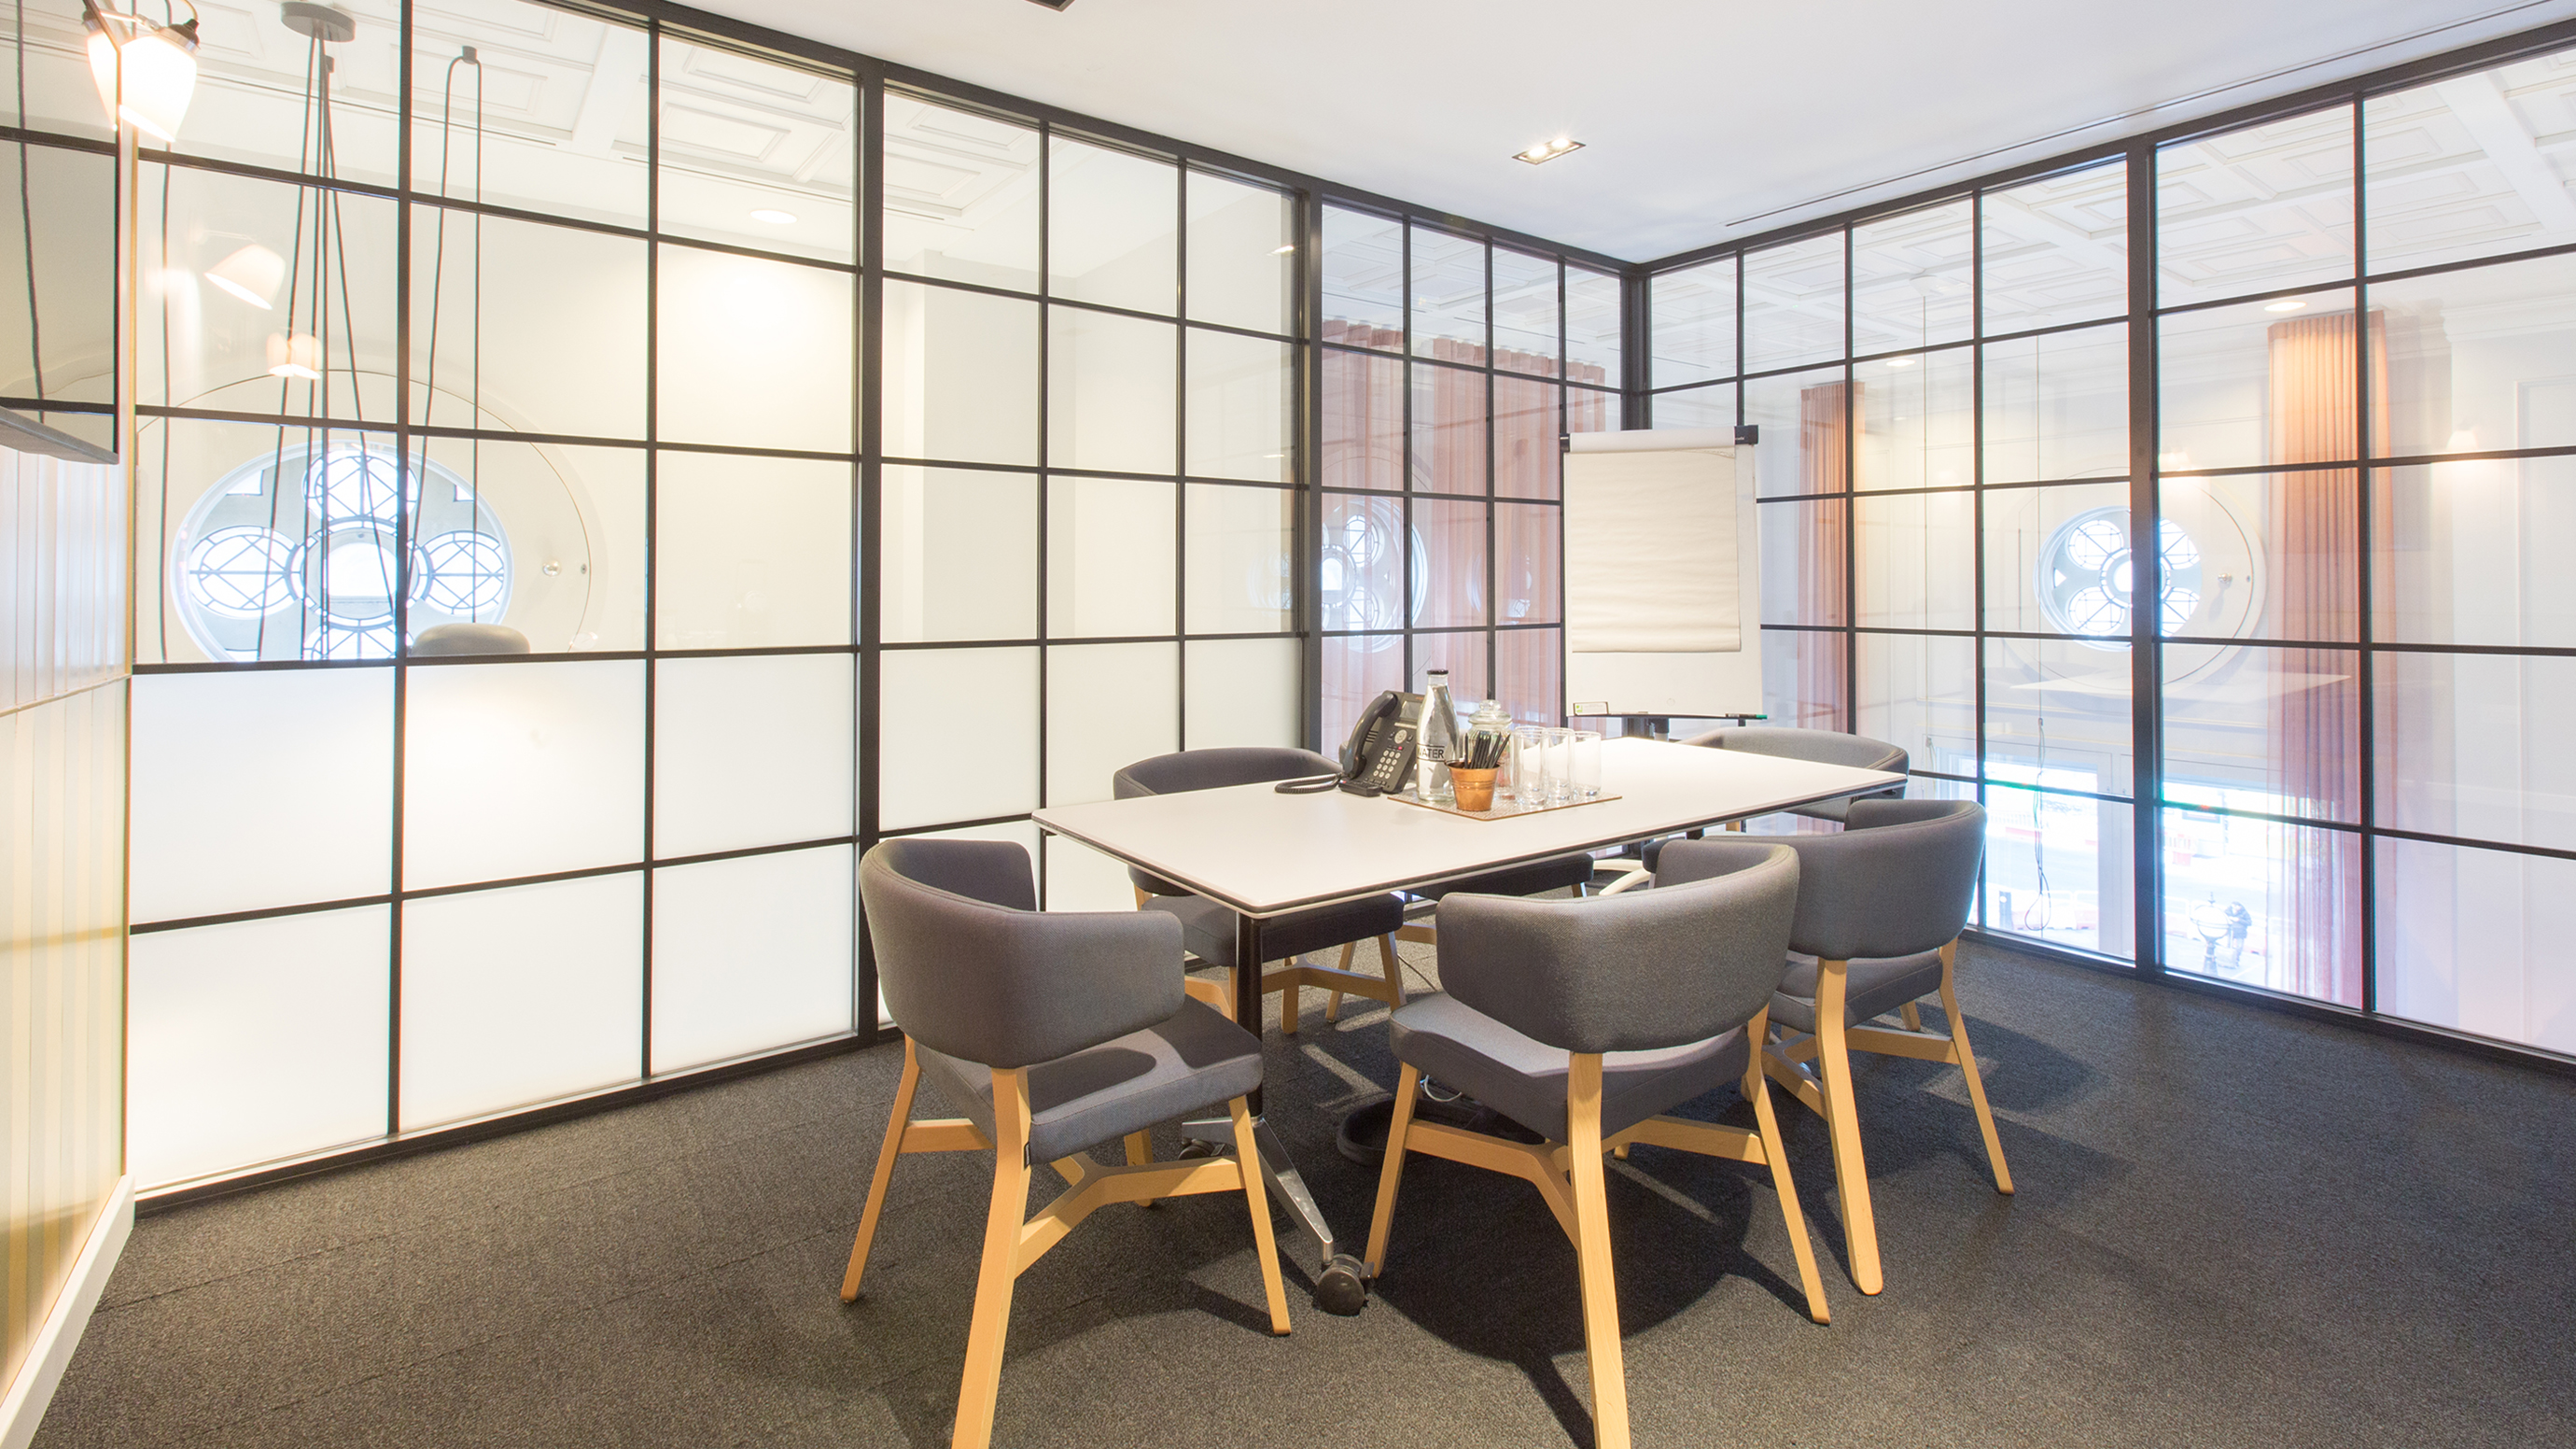 Small meeting room with white rectangular table and grey chairs at TOG building 50 Liverpool Street London